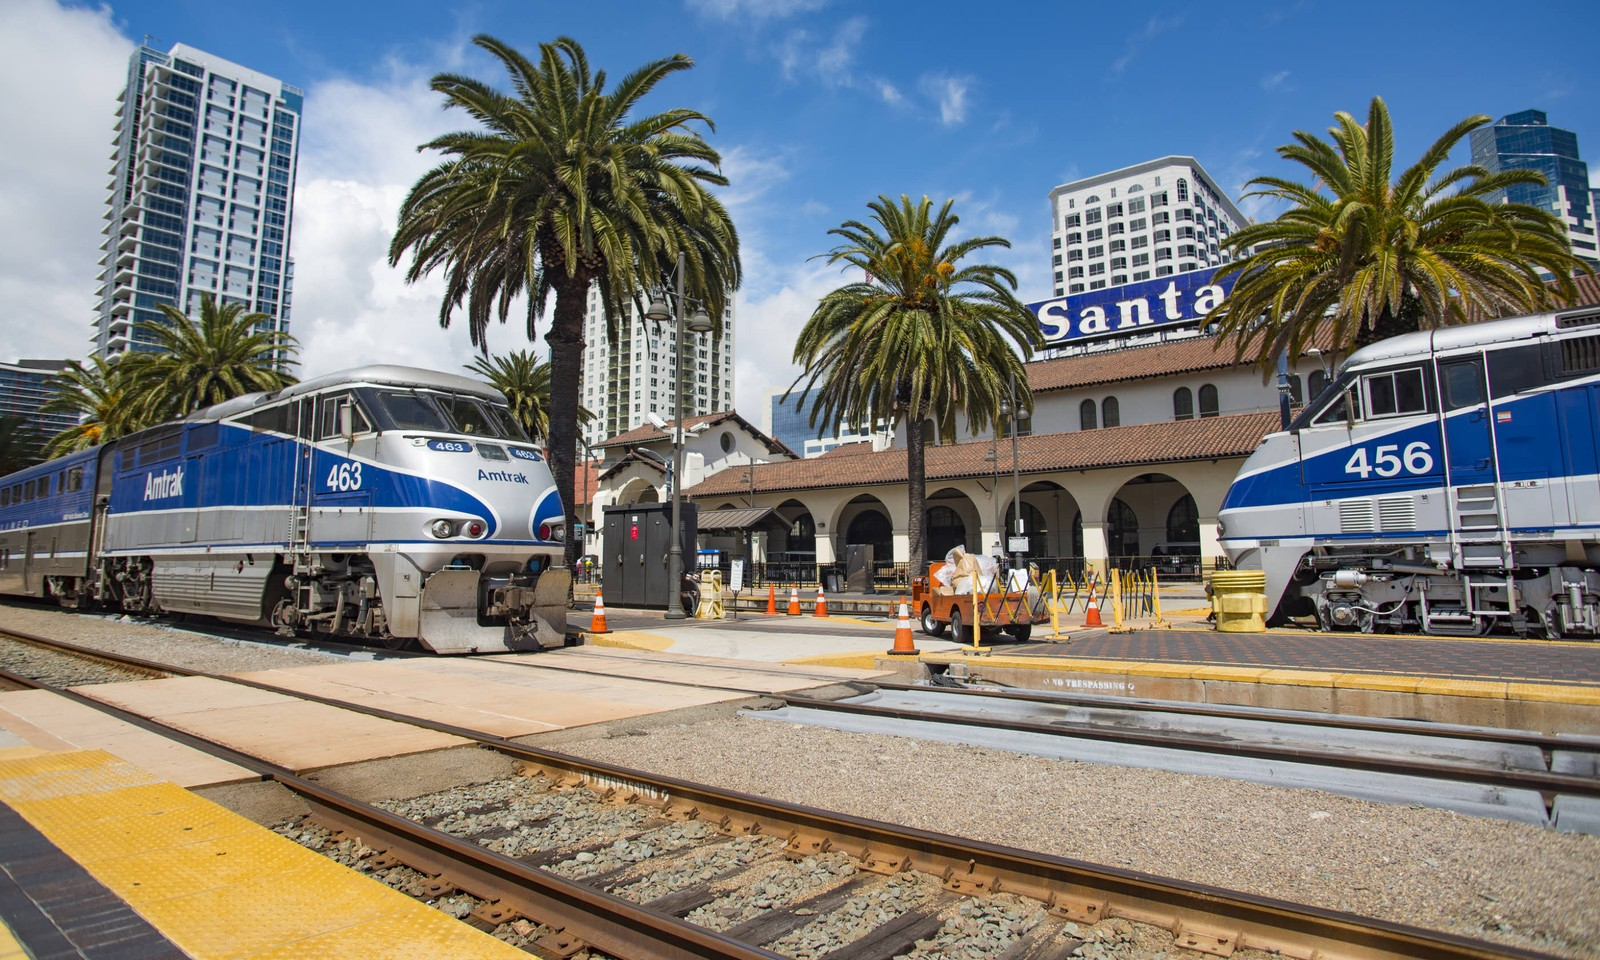 Train station in San Diego, California (Dreamstime)